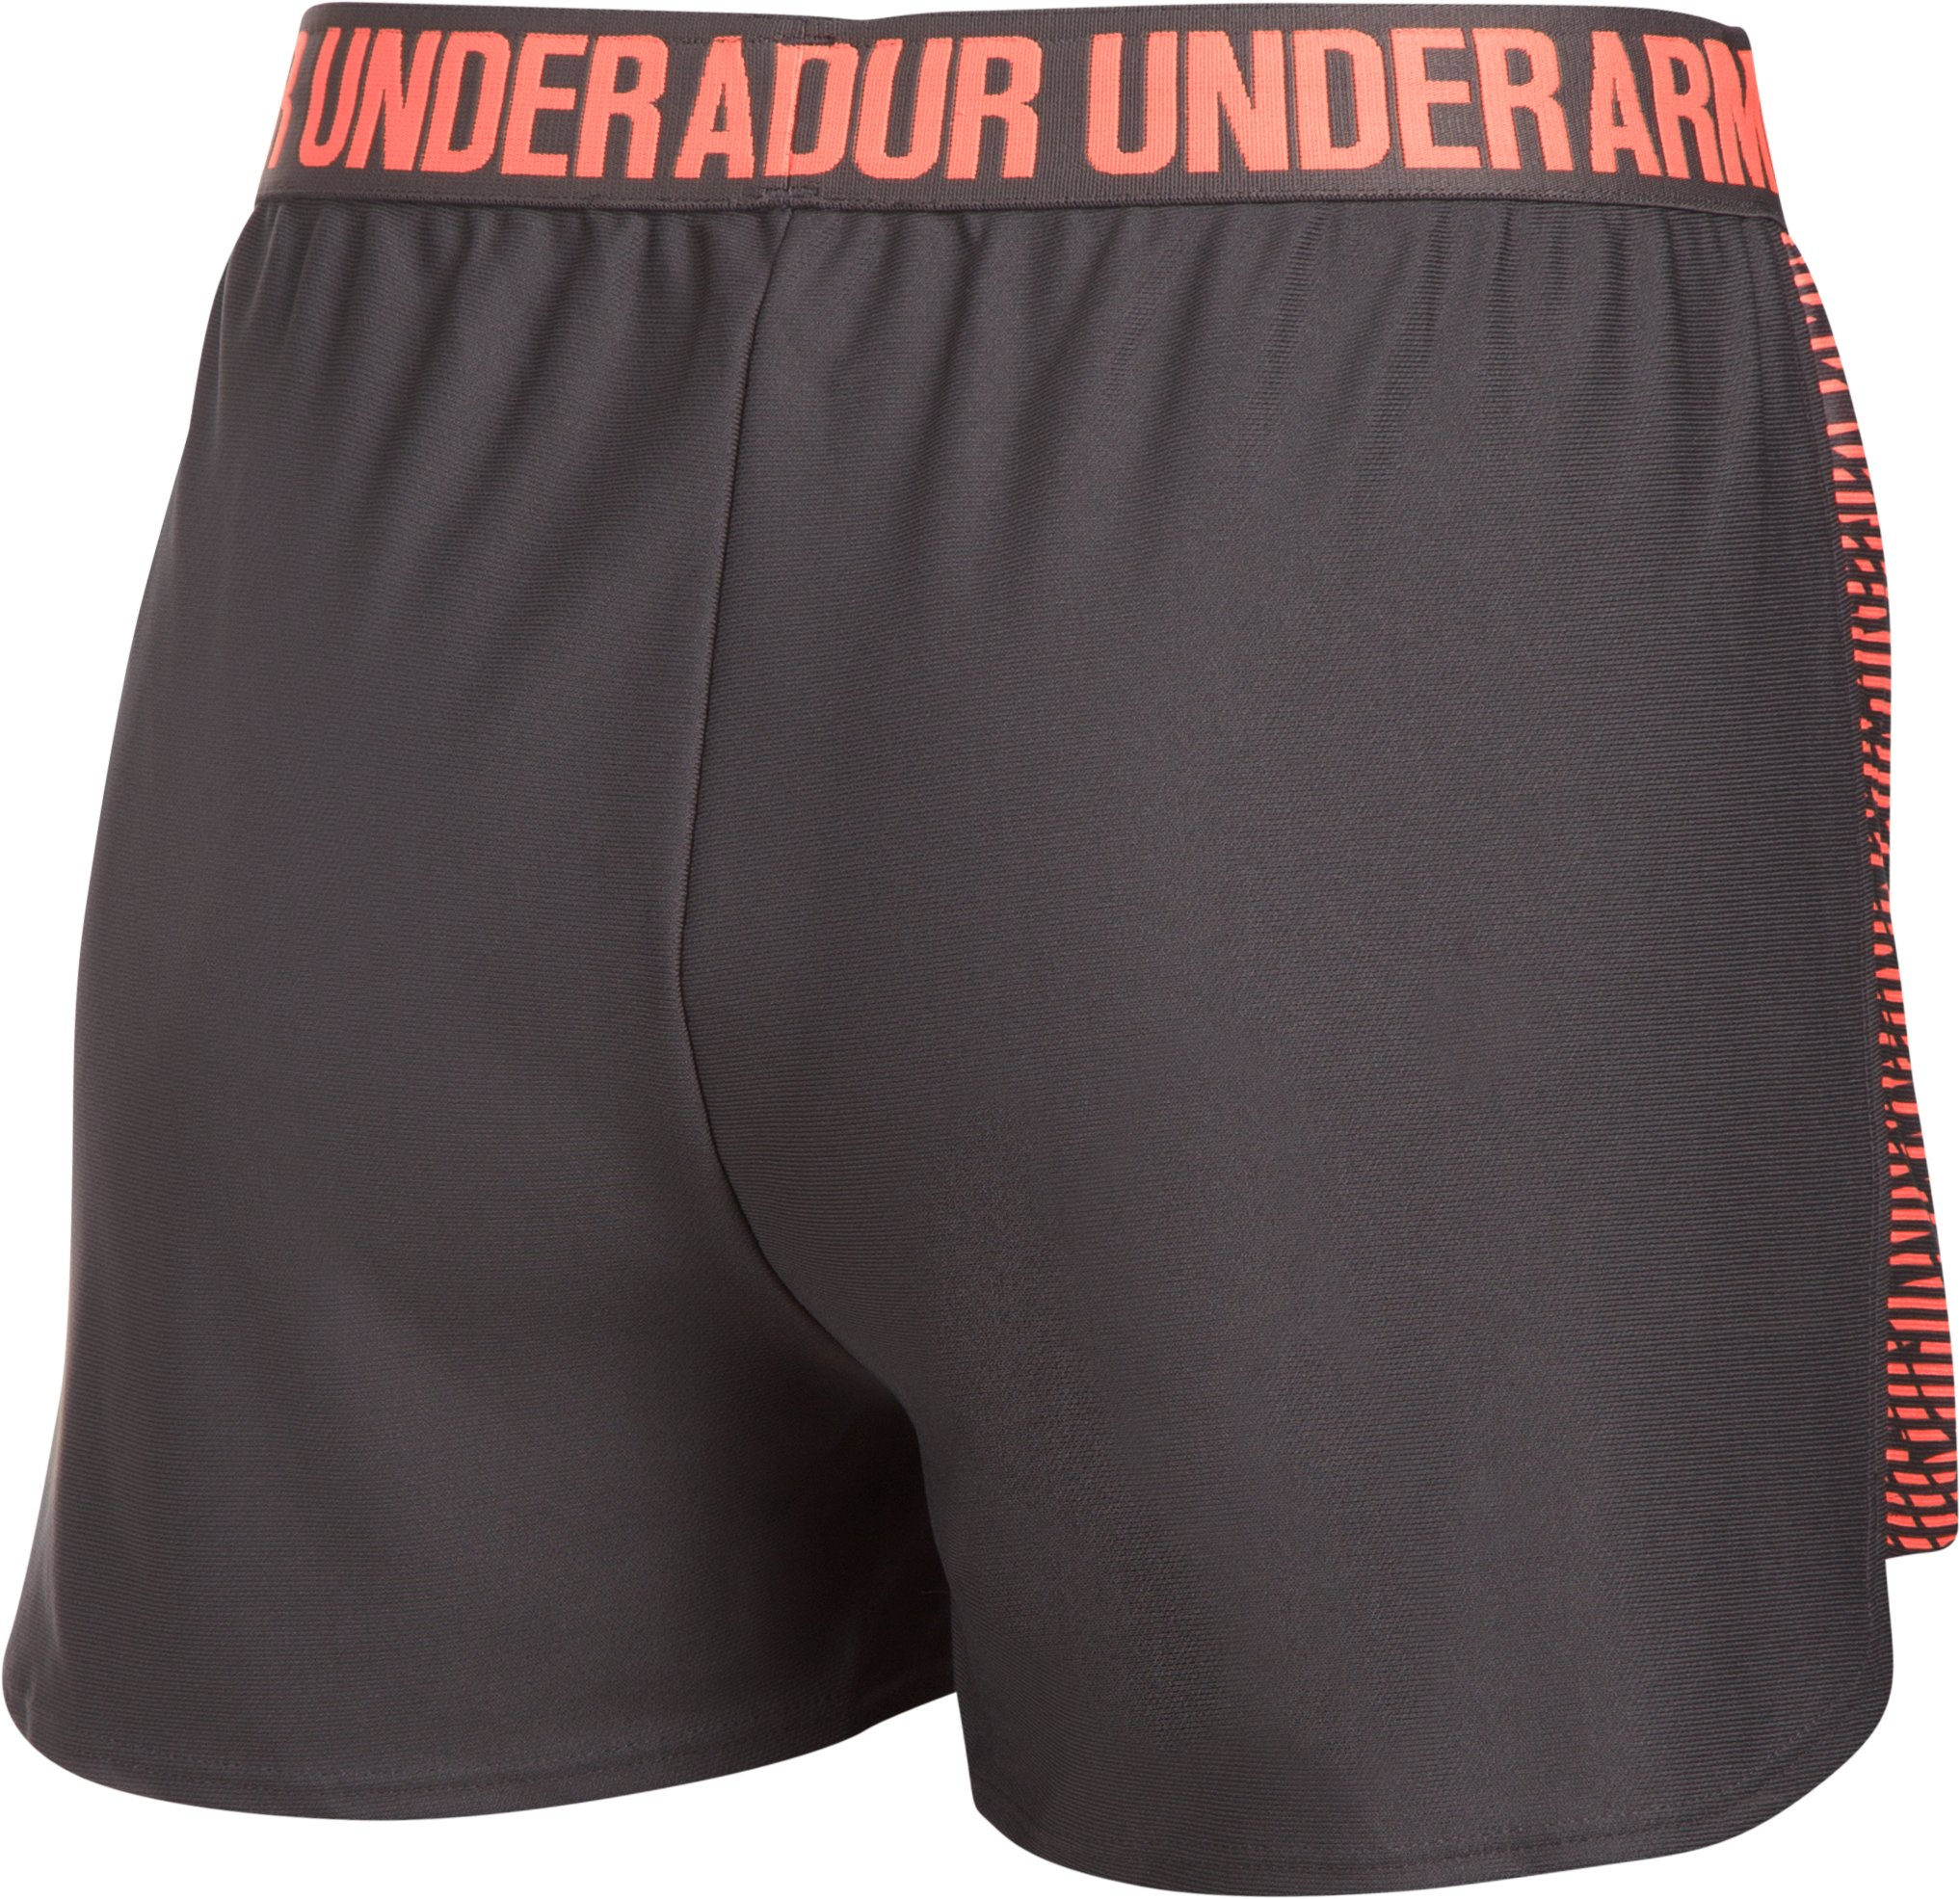 Women's UA Play Up Shorts 2.0 - Printed, Charcoal, undefined